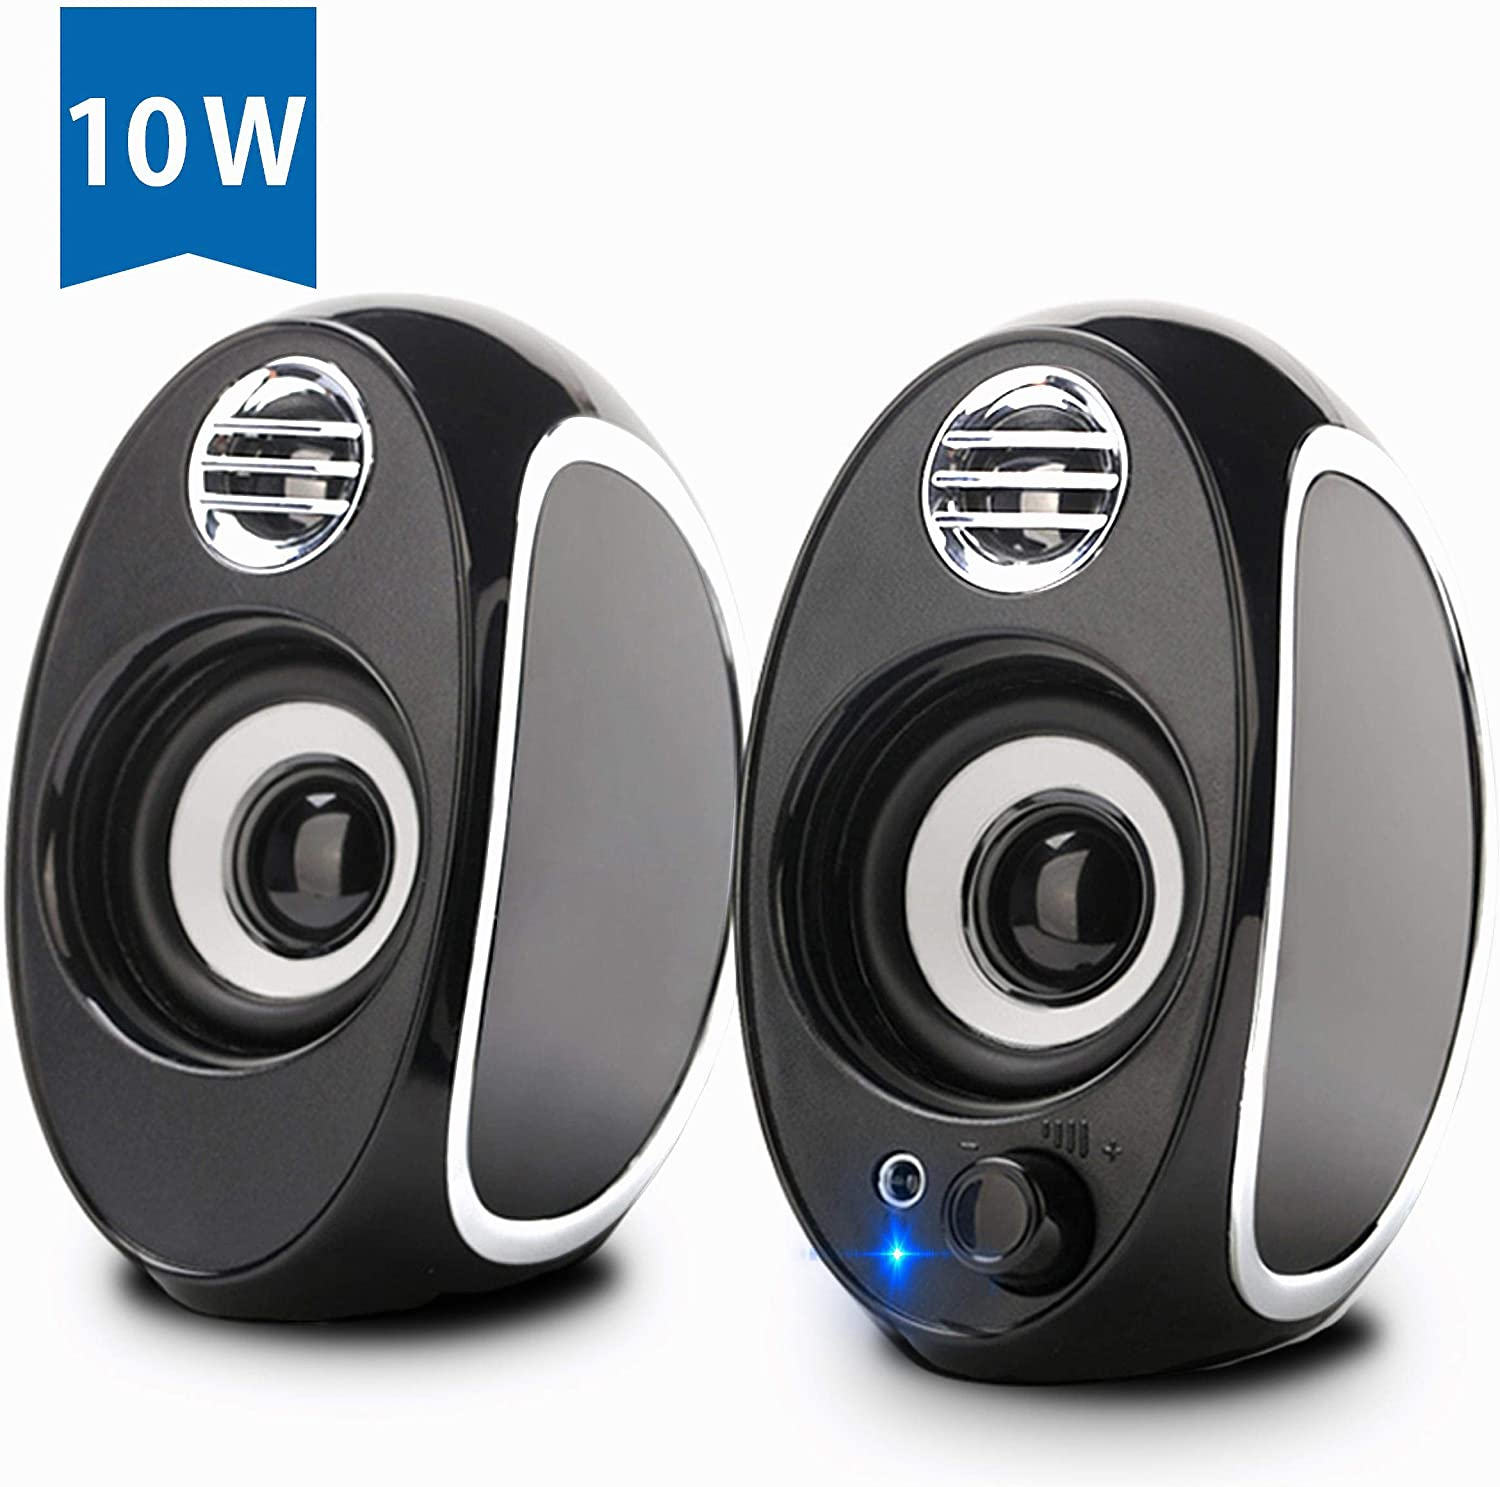 Computer Speakers, BONKS 10W PC Powered Speakers USB Speaker Monitor Speakers for Desktop Computer/PC/TV/Laptop Gaming Speaker